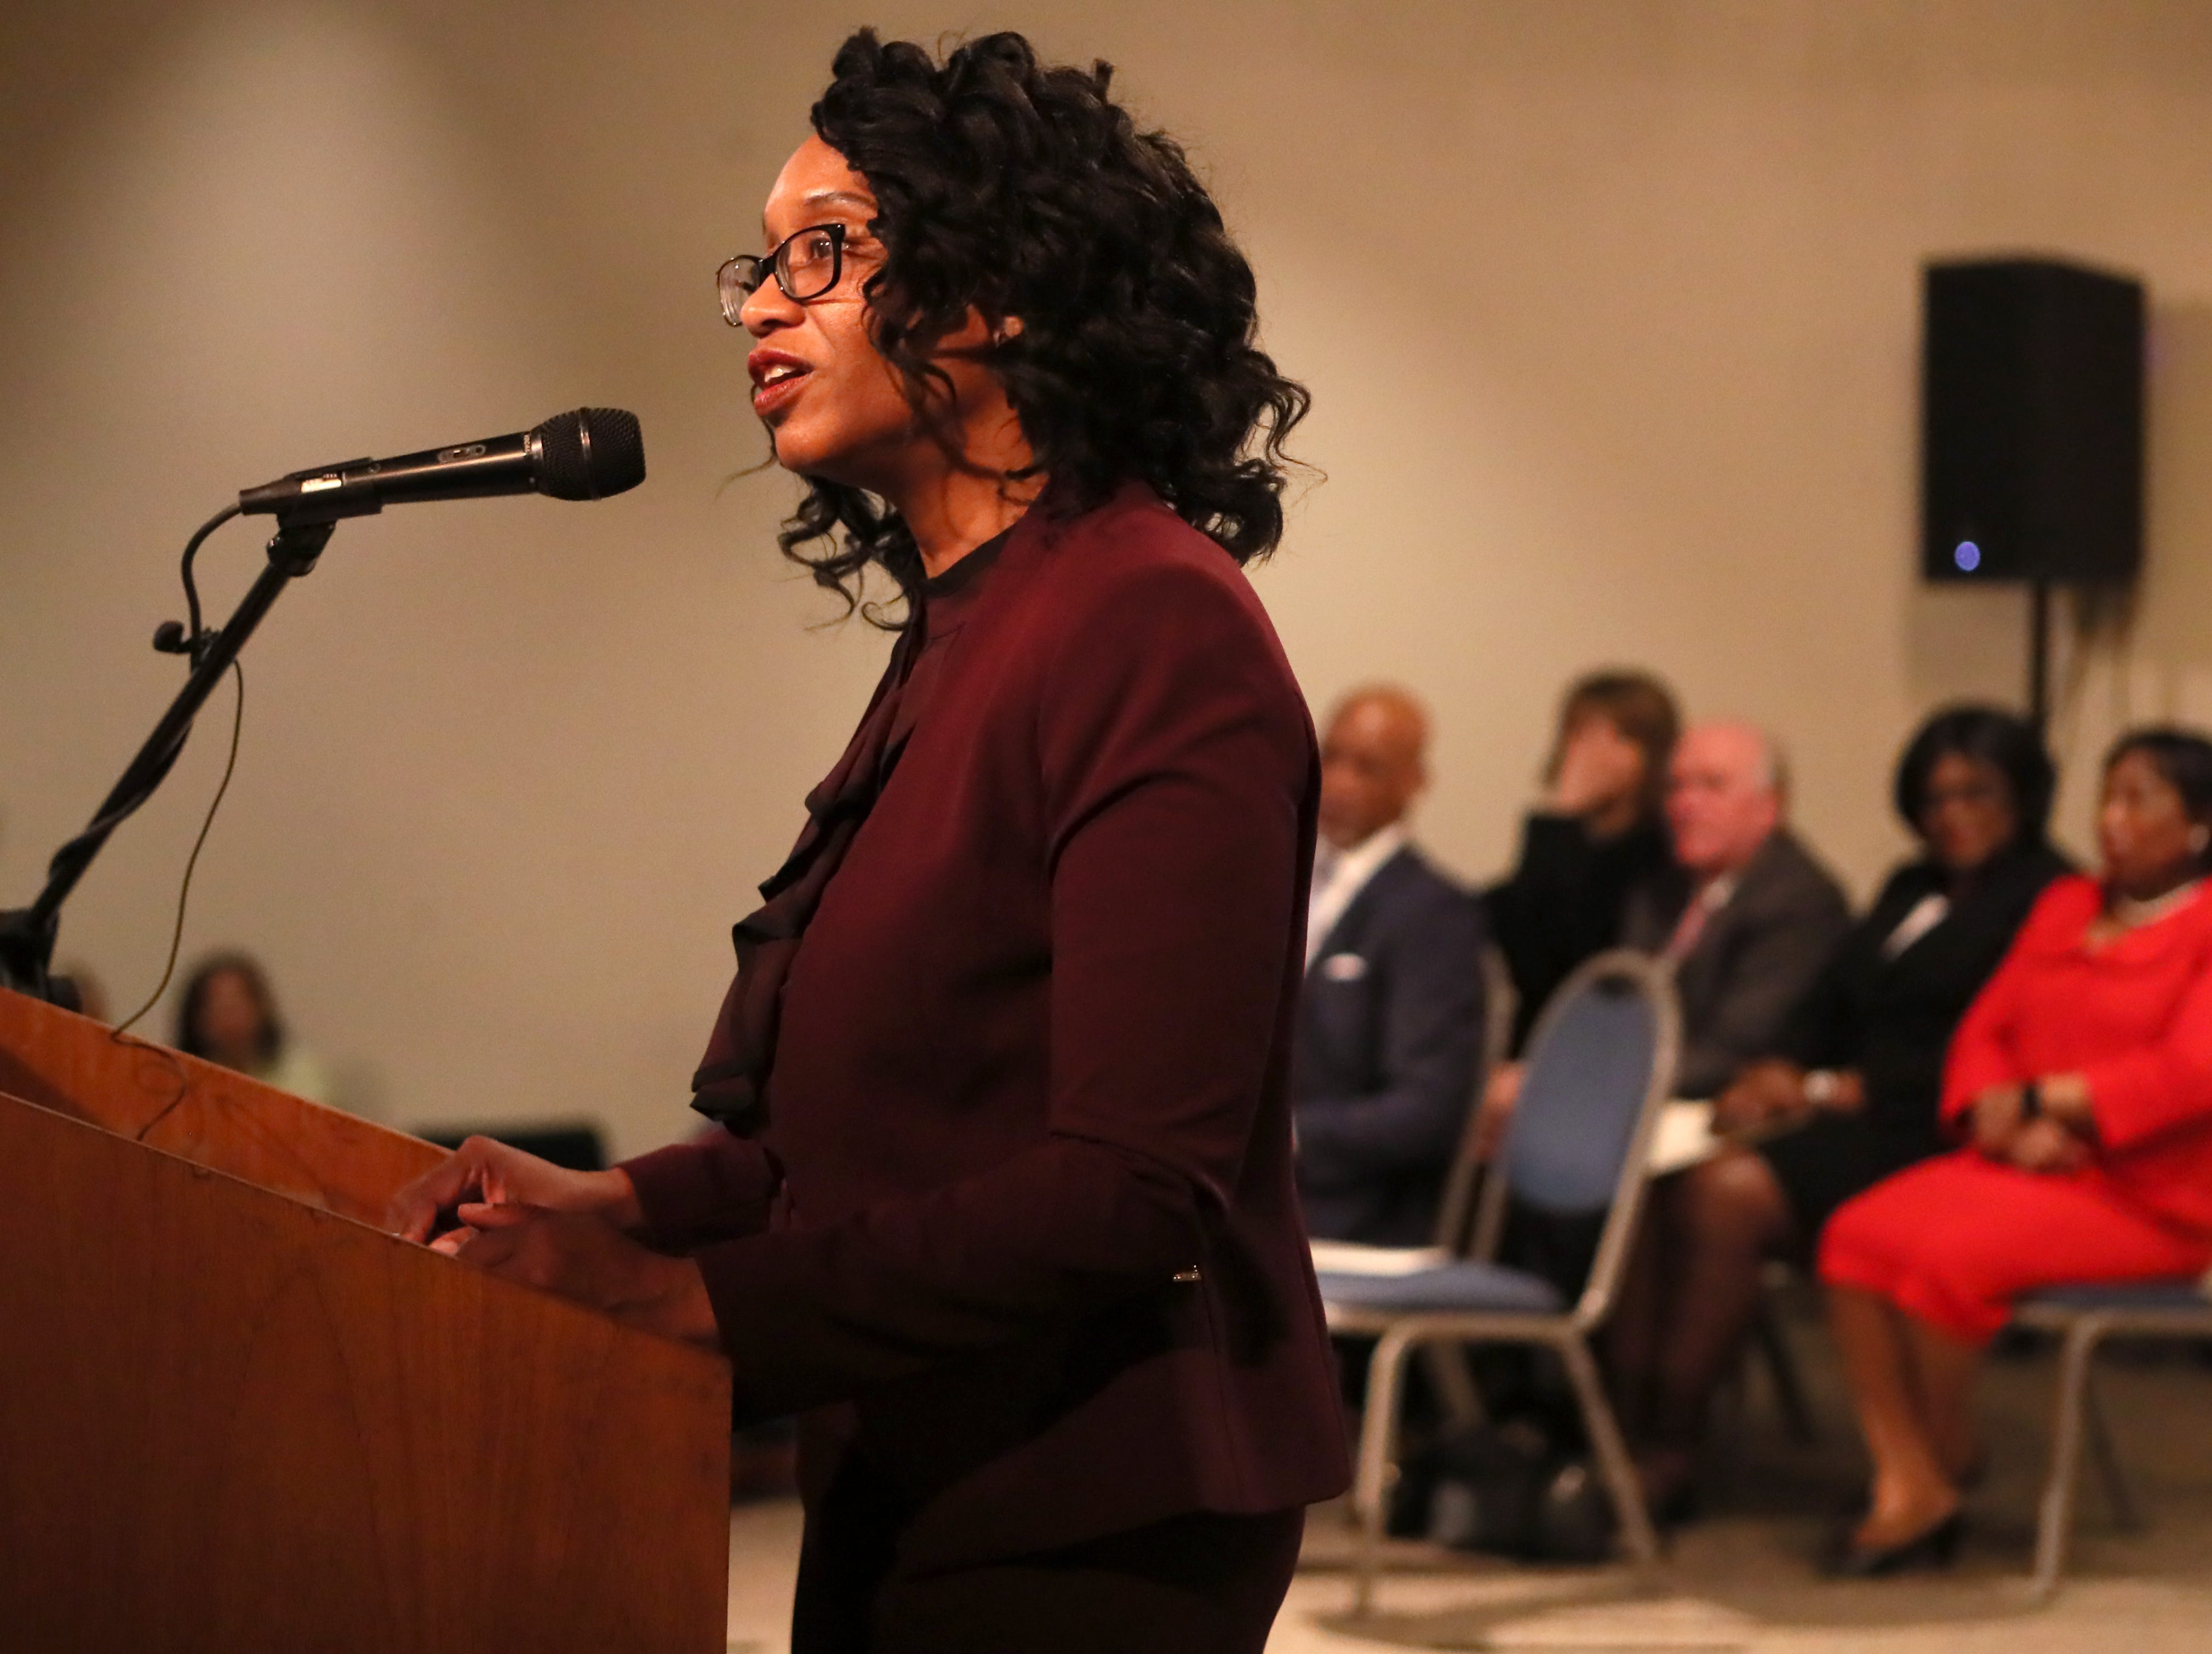 Phyllis Aluko speaks while being sworn in as Shelby County's first female chief public defender at the Walter L. Bailey, Jr. Criminal Justice Center on Tuesday, April 16, 2019.